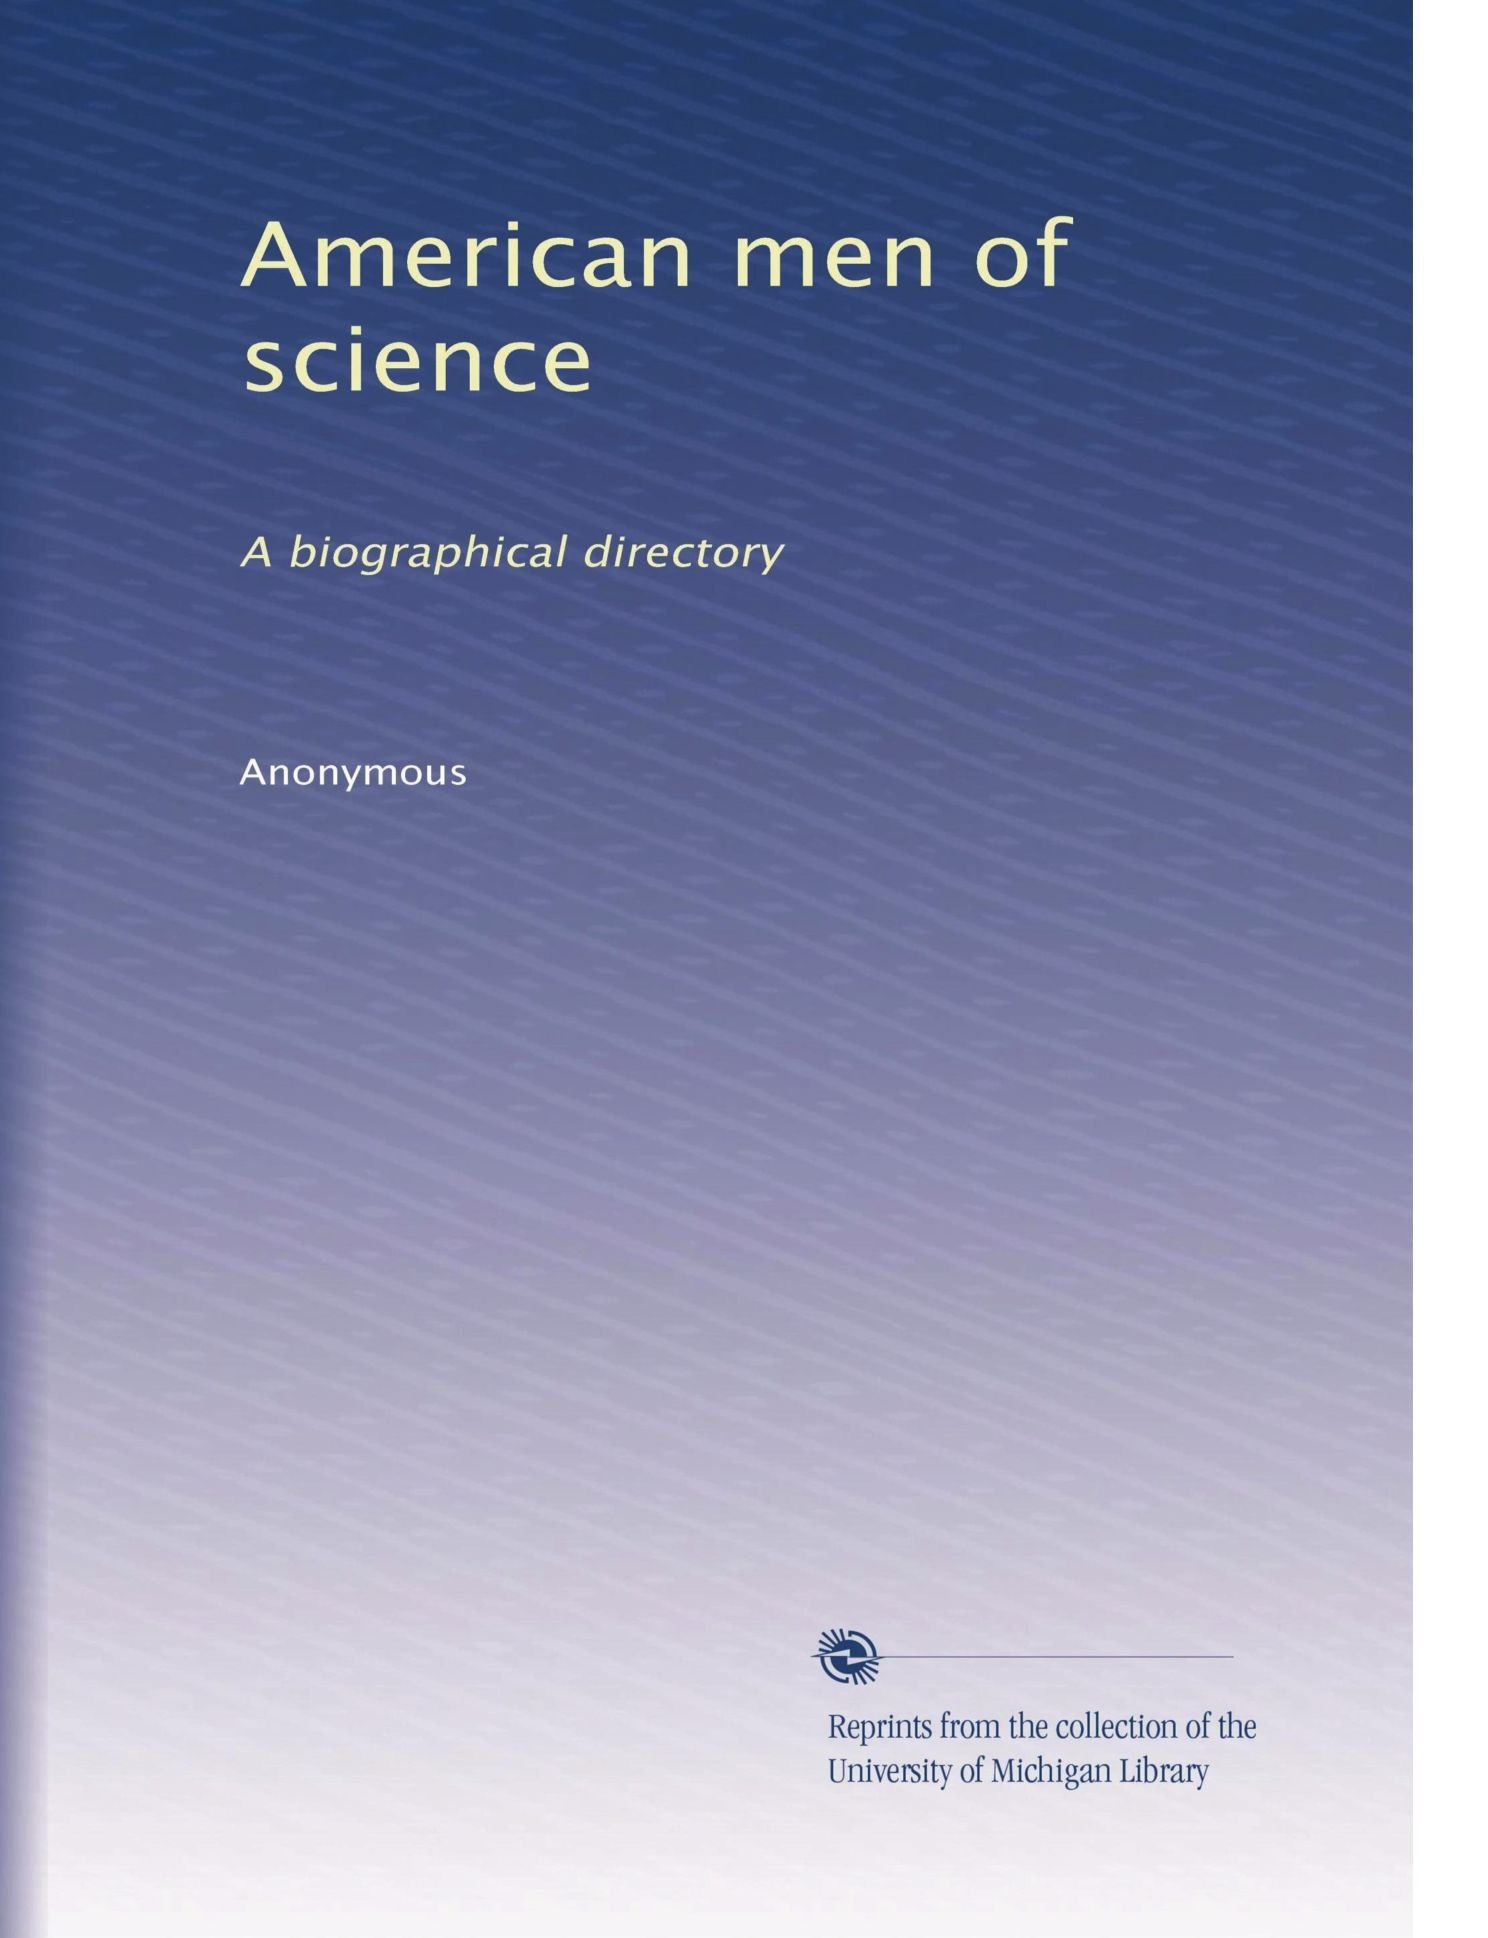 American men of science: A biographical directory PDF